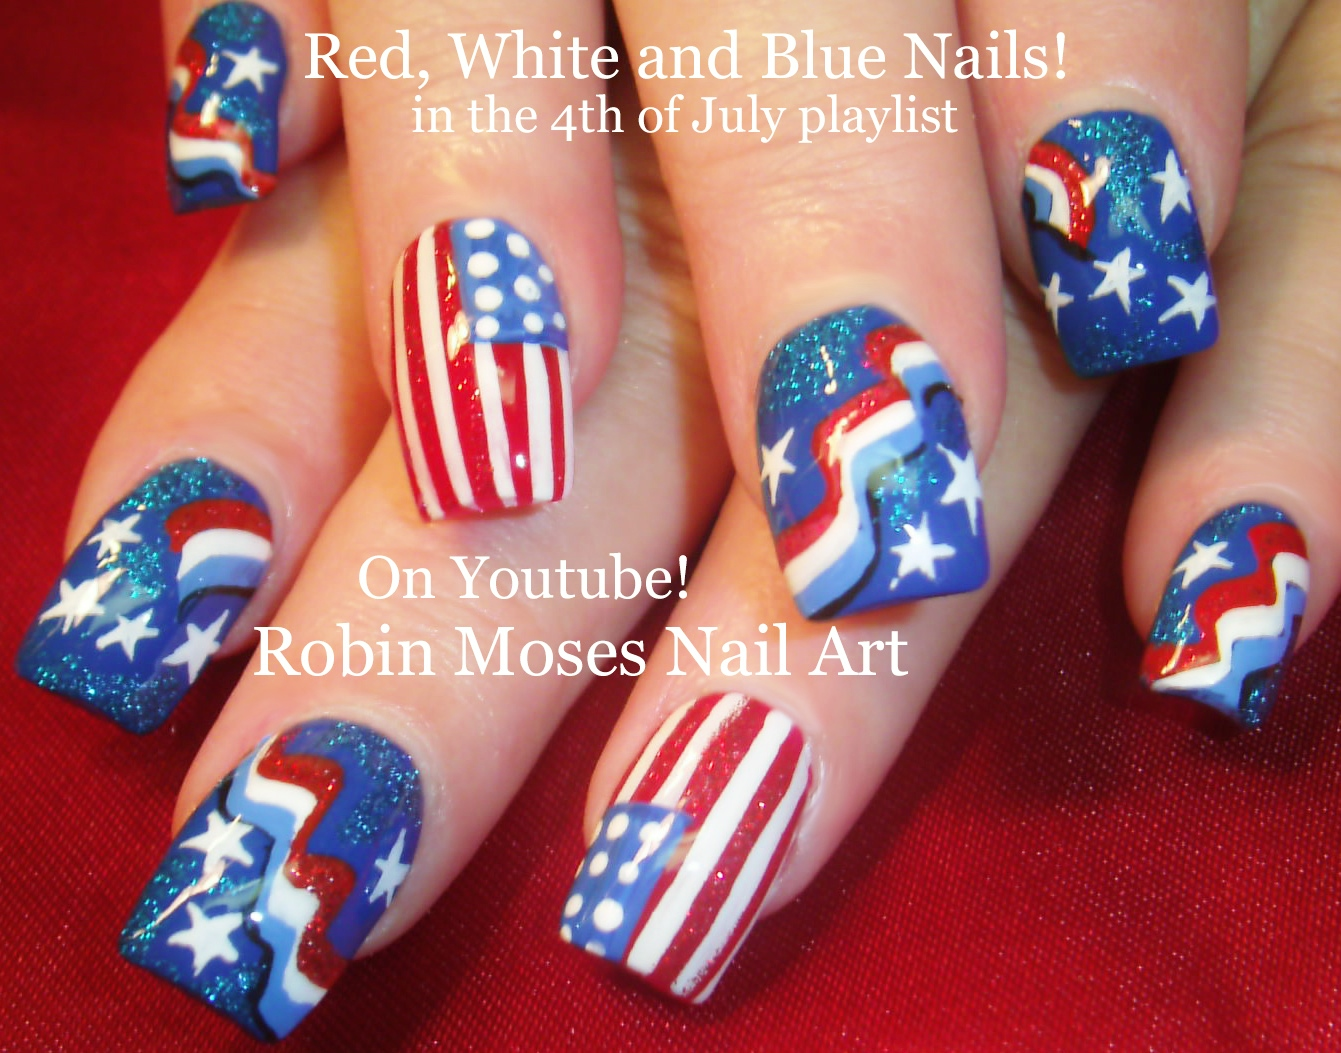 robin moses nail art: 4th of july nail tutorial up today! red